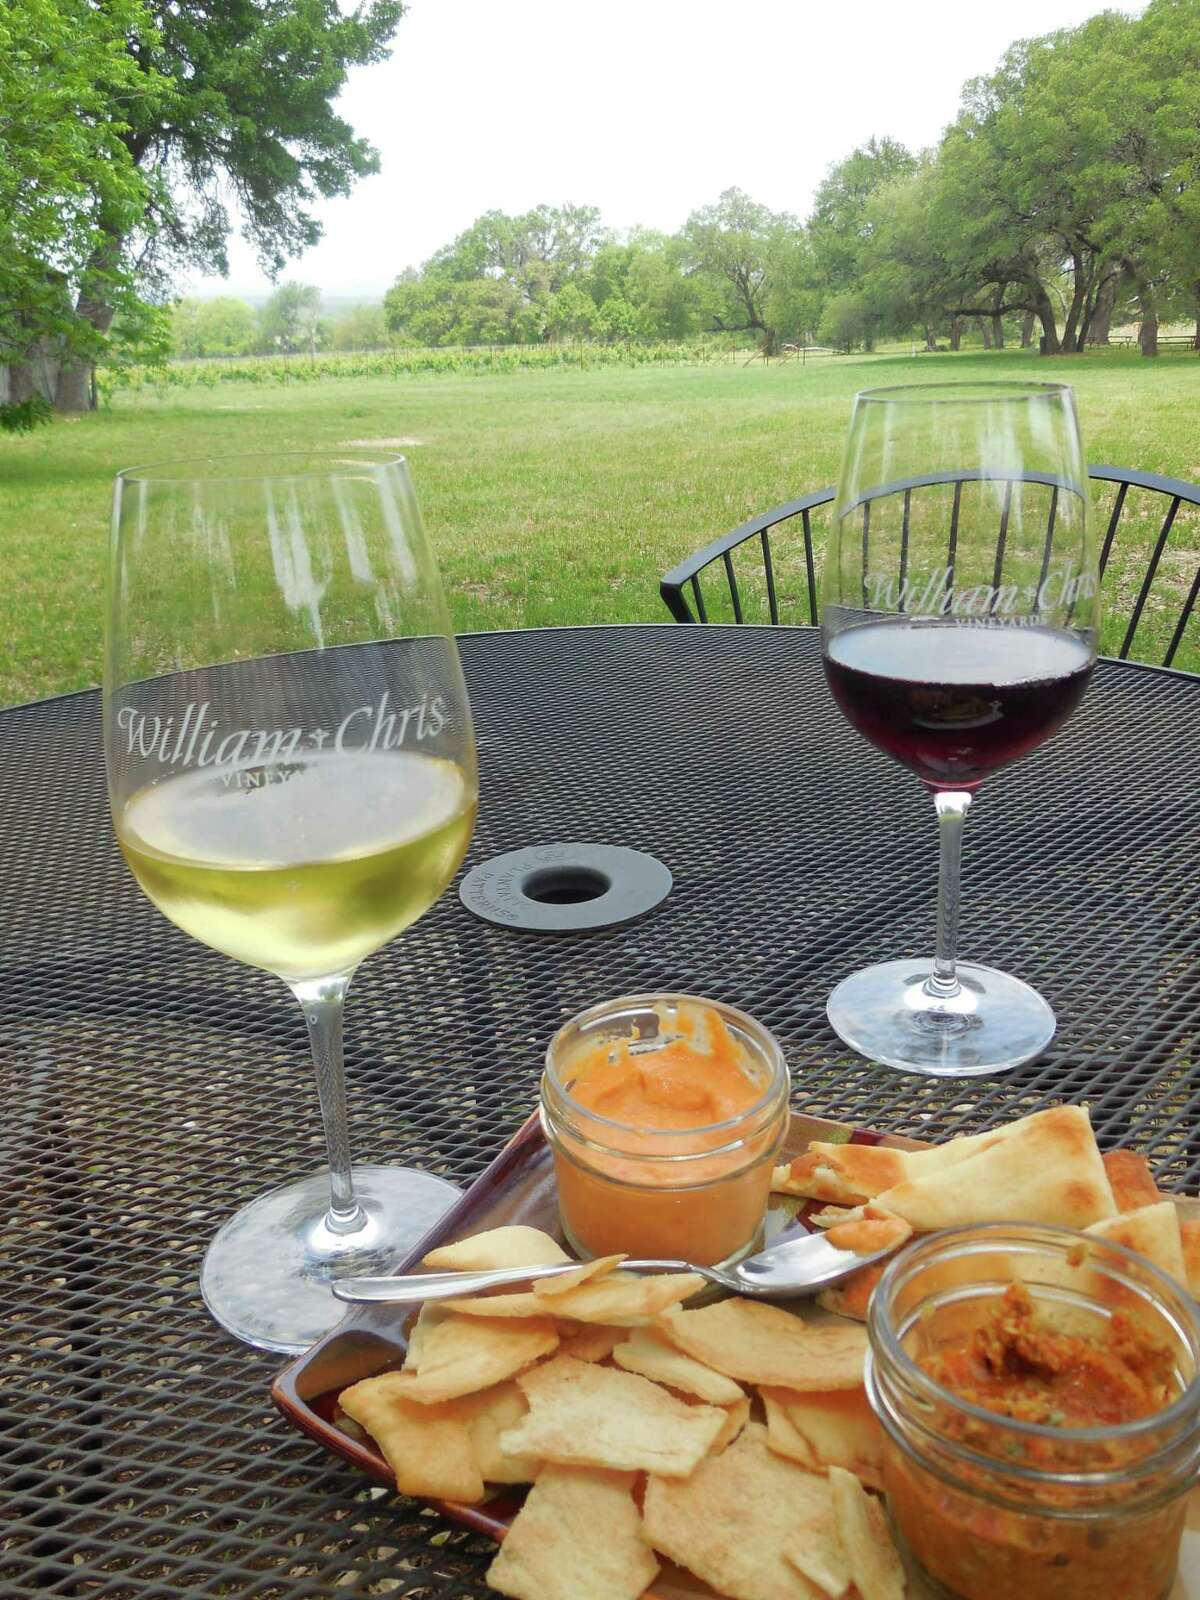 The William Chris Vineyard in Hye is one of more than two-dozen stops on U.S. 290 east of Fredericksburg.